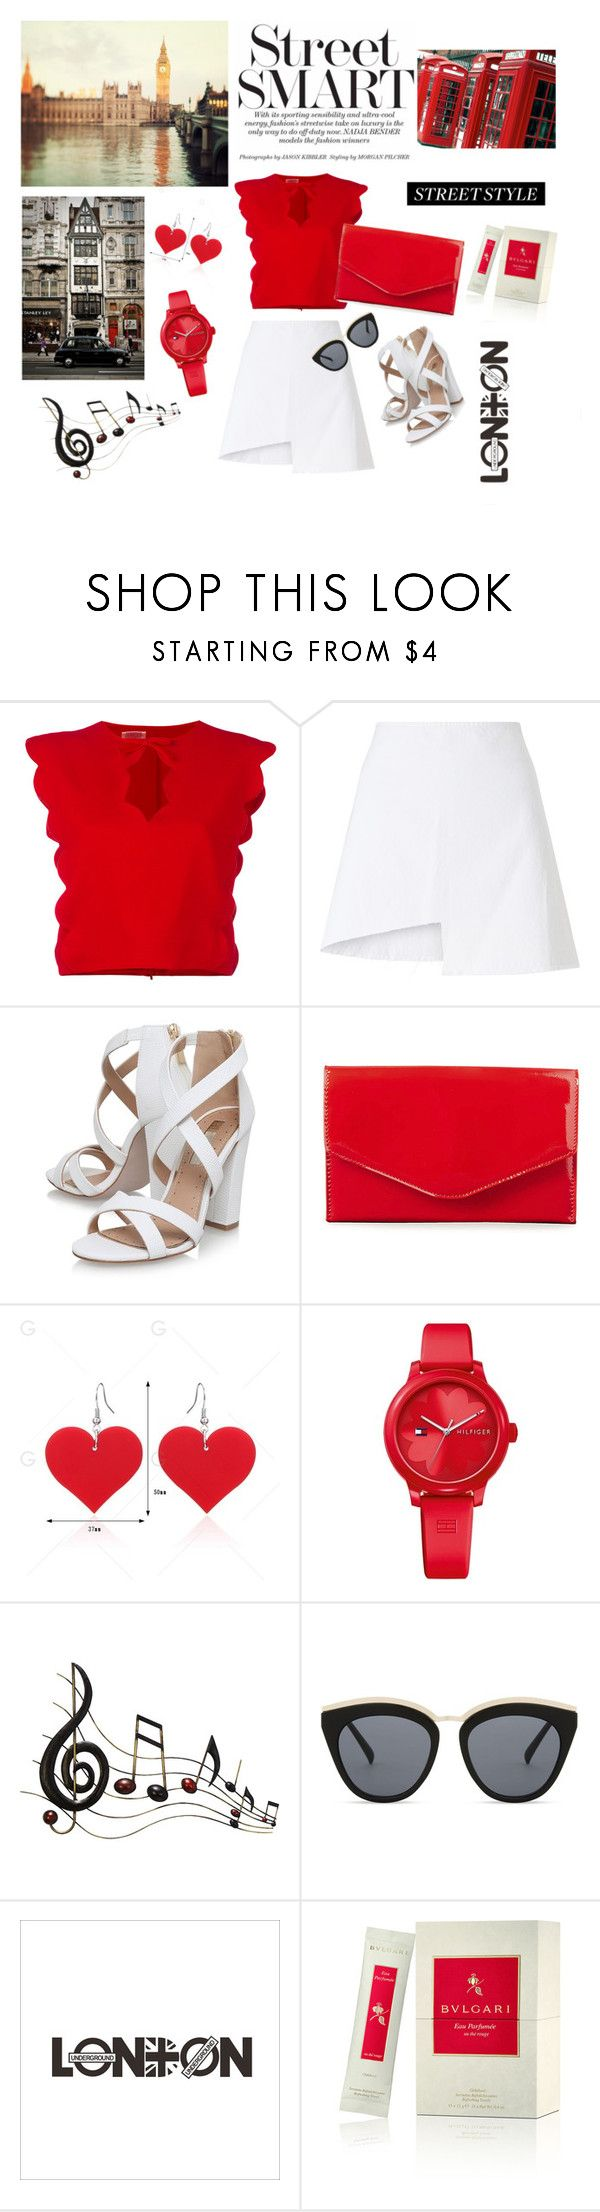 """London,London"" by naya-dg ❤ liked on Polyvore featuring Giambattista Valli, WÃ¥ven, Miss KG, Steve Madden, Tommy Hilfiger, Benzara, Le Specs and Bulgari"